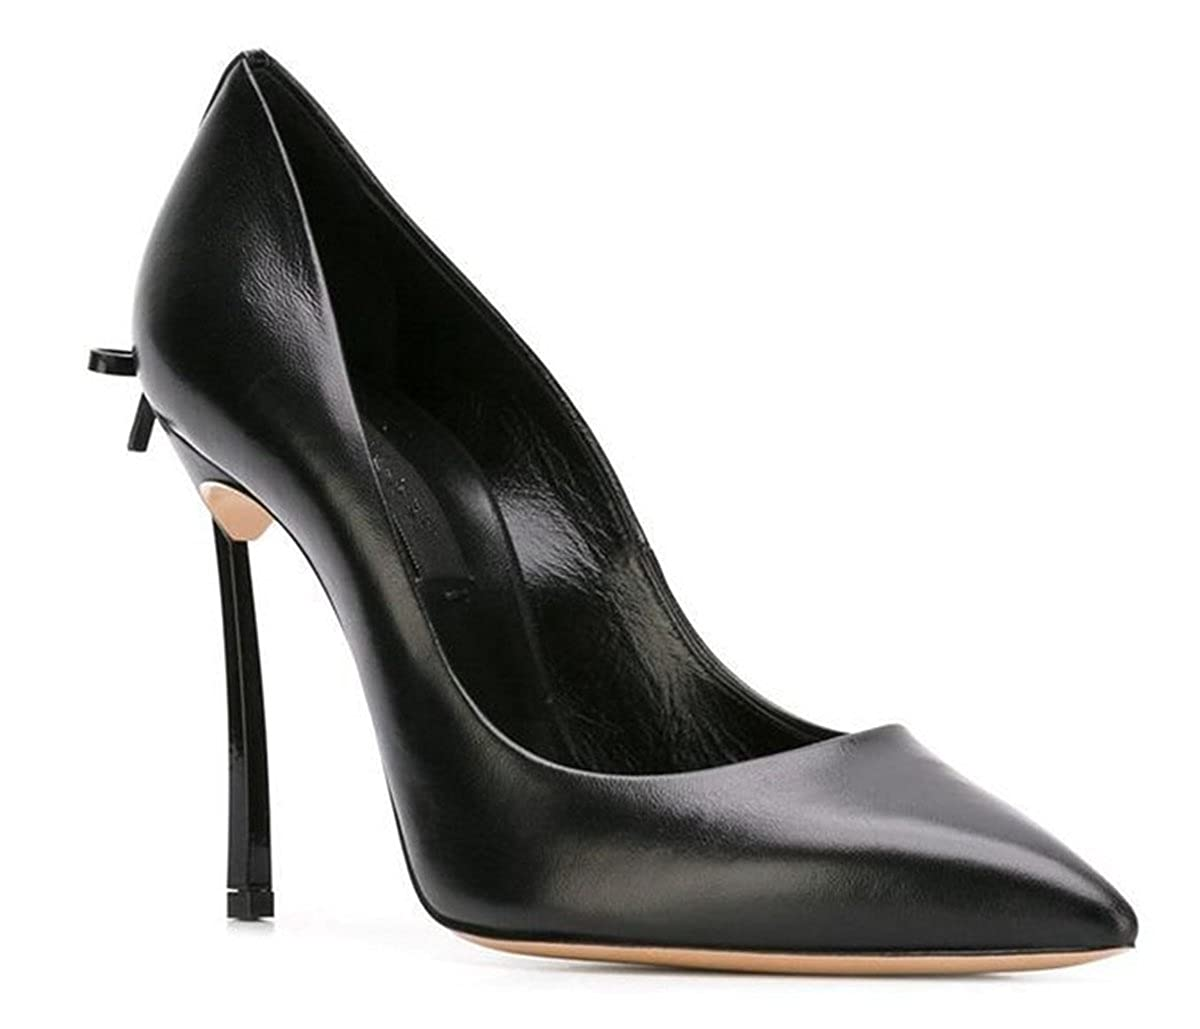 Miyoopark LS0601 Women's Slip-on Stiletto Leather Evening Evening Evening Formal Pumps B075LJPP6H Dance e898f9